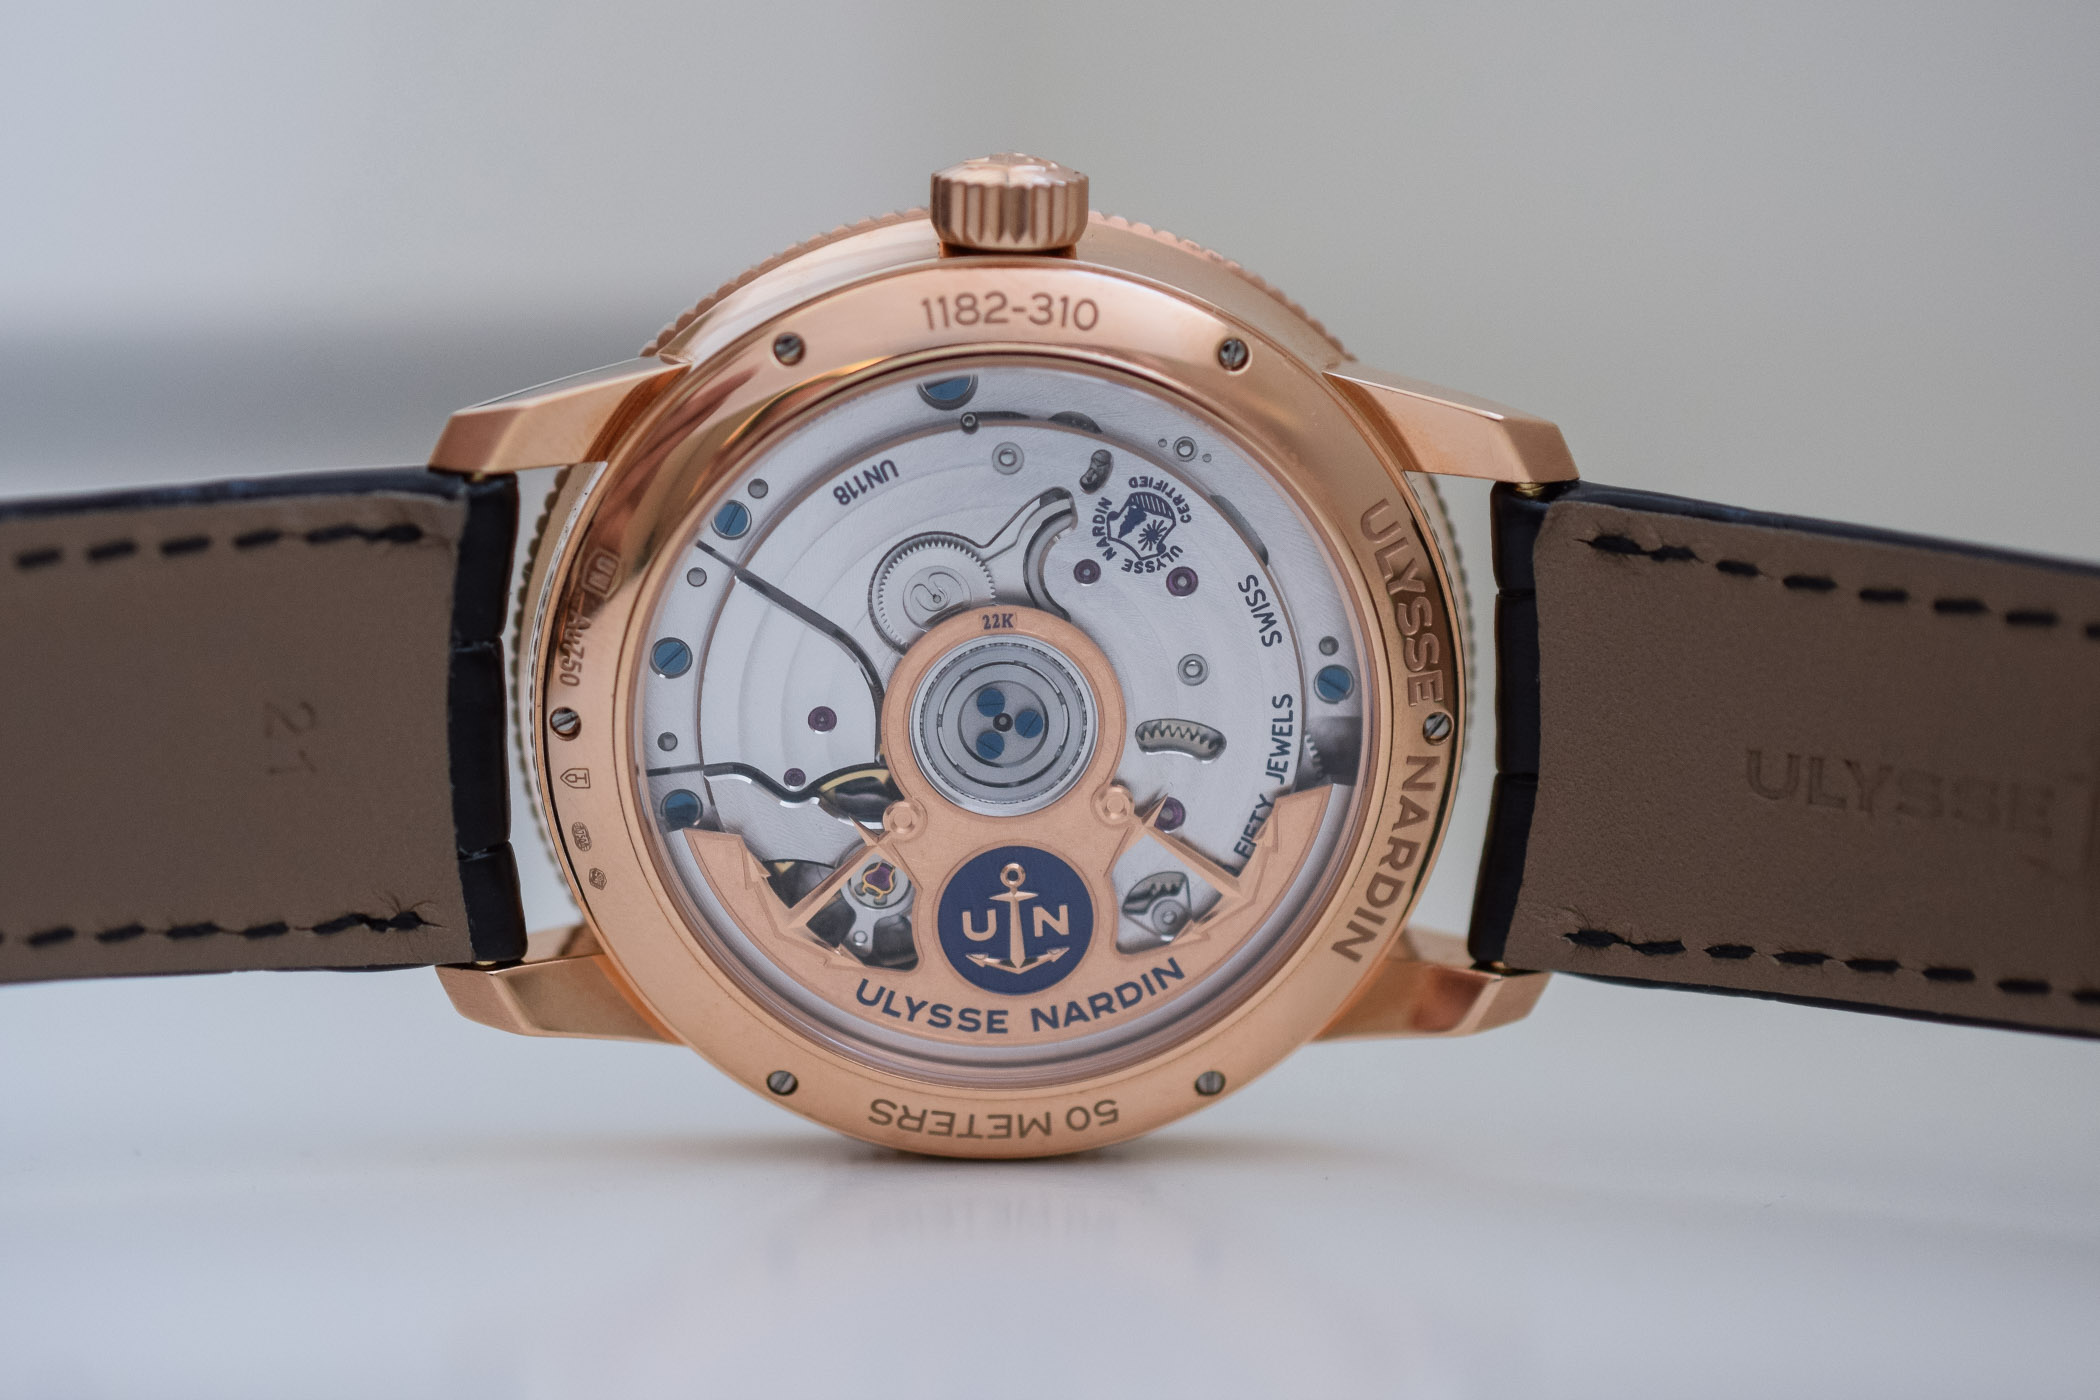 Ulysse Nardin Marine Torpilleur Collection 2018 - 1182-310:42 rose gold